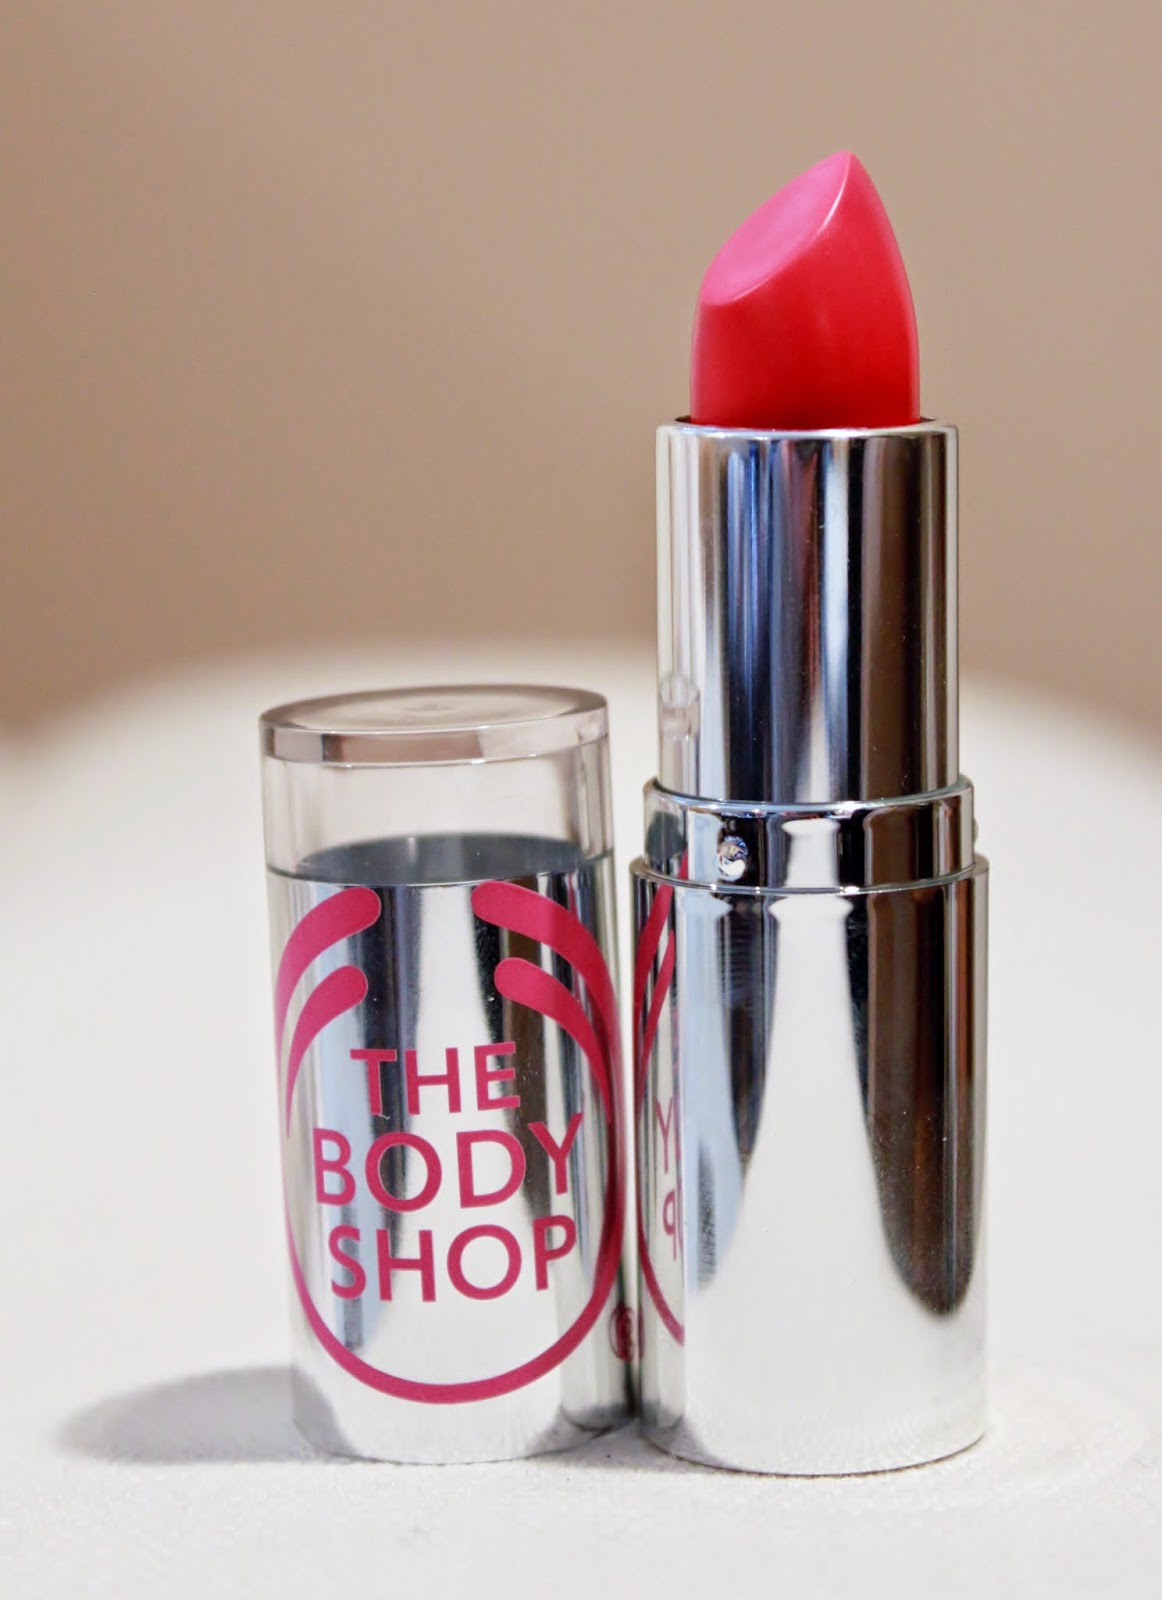 Just J: The Body Shop Colour Crush Lipstick review